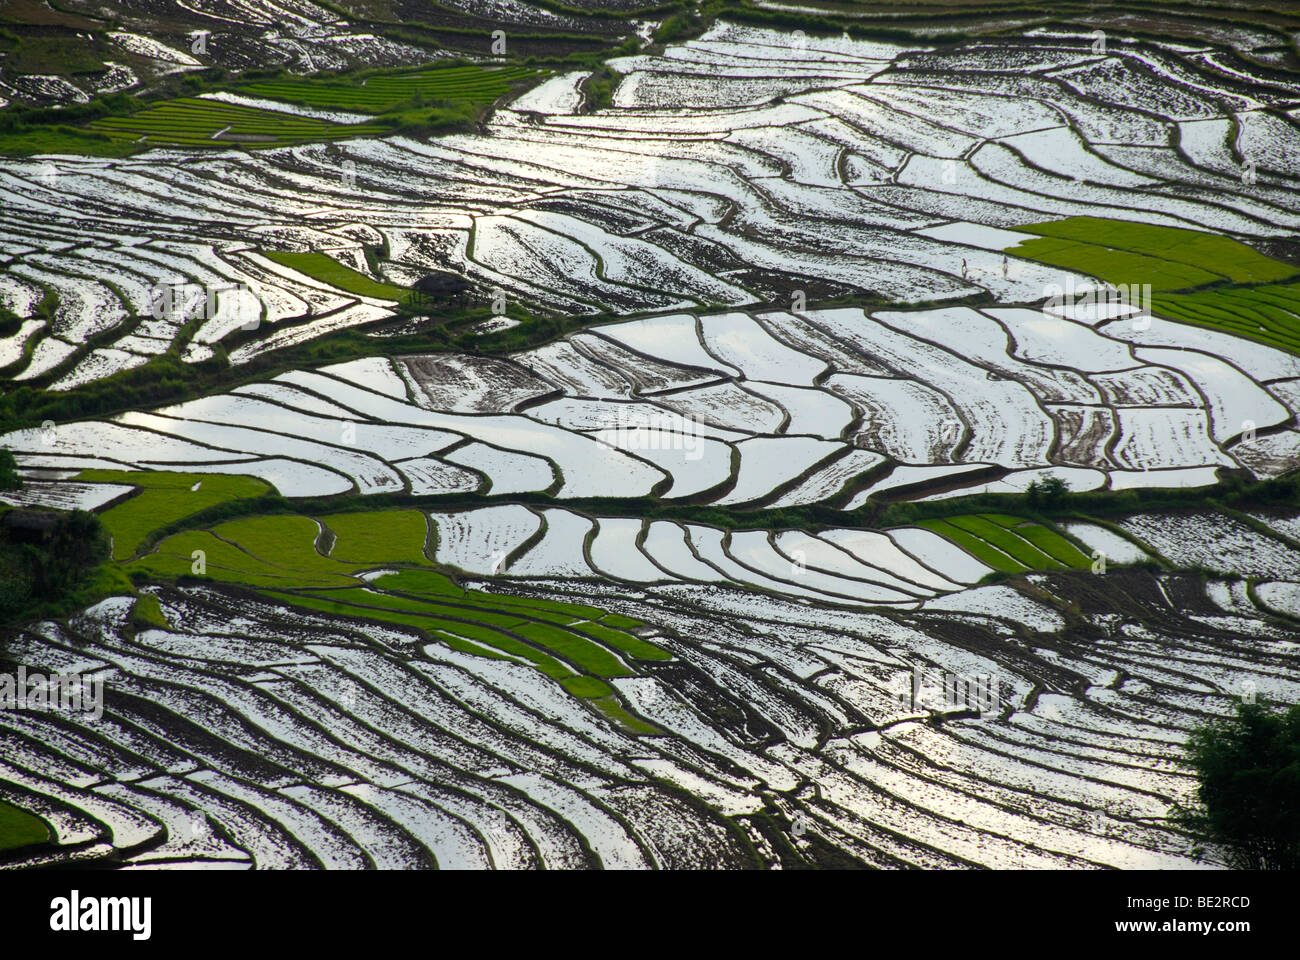 Rice, rice cultivation, rice terraces on a slope filled with water at Ou Tai, Gnot Ou district, Yot Ou, Phongsali, - Stock Image